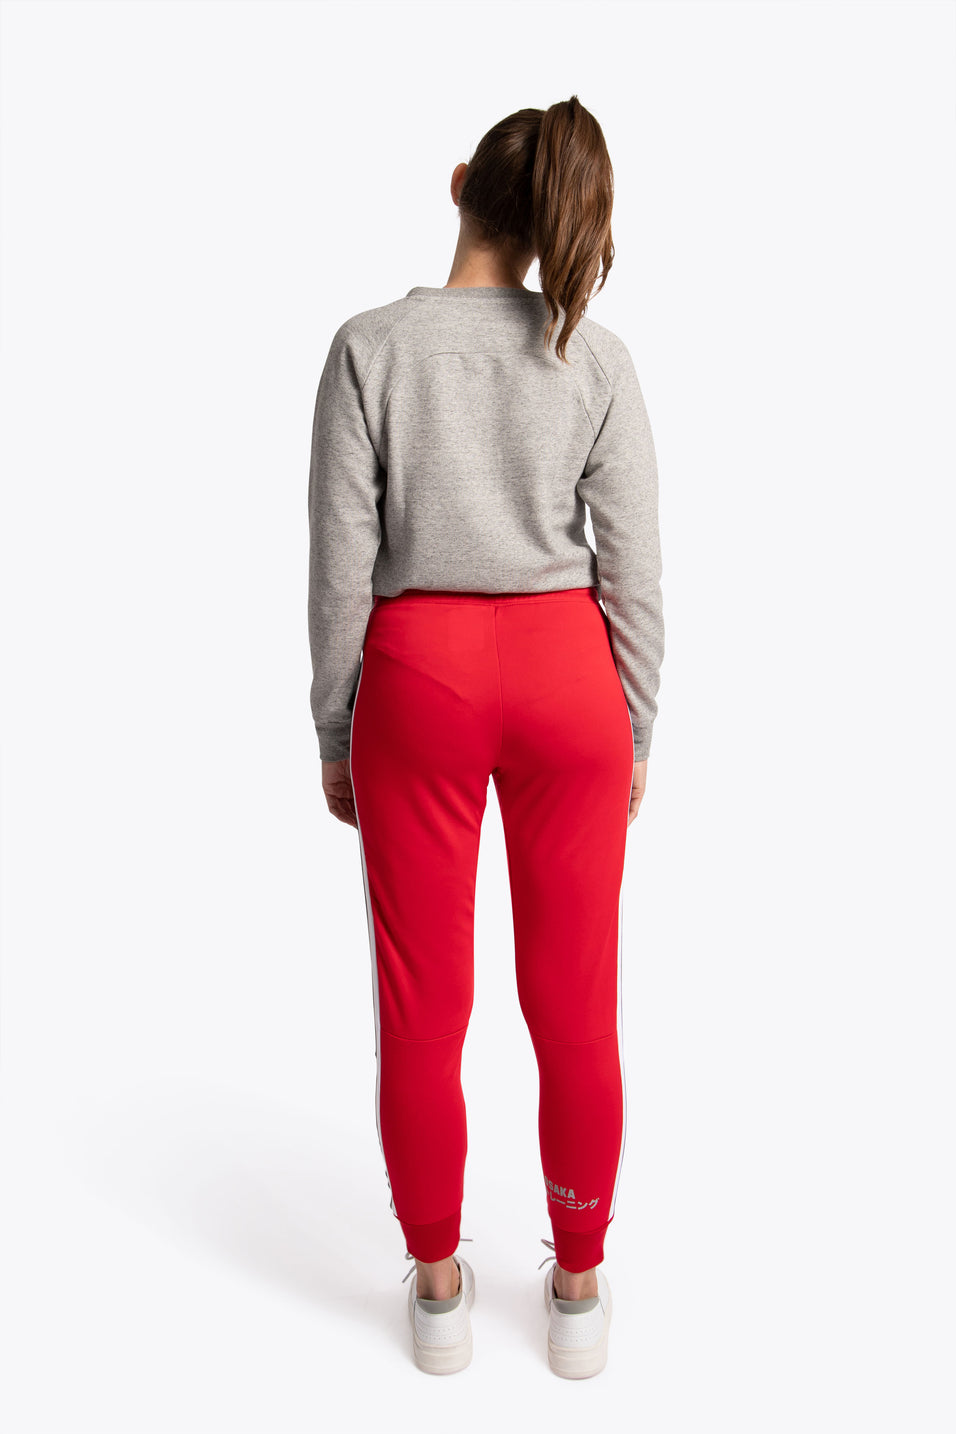 women joggers in red